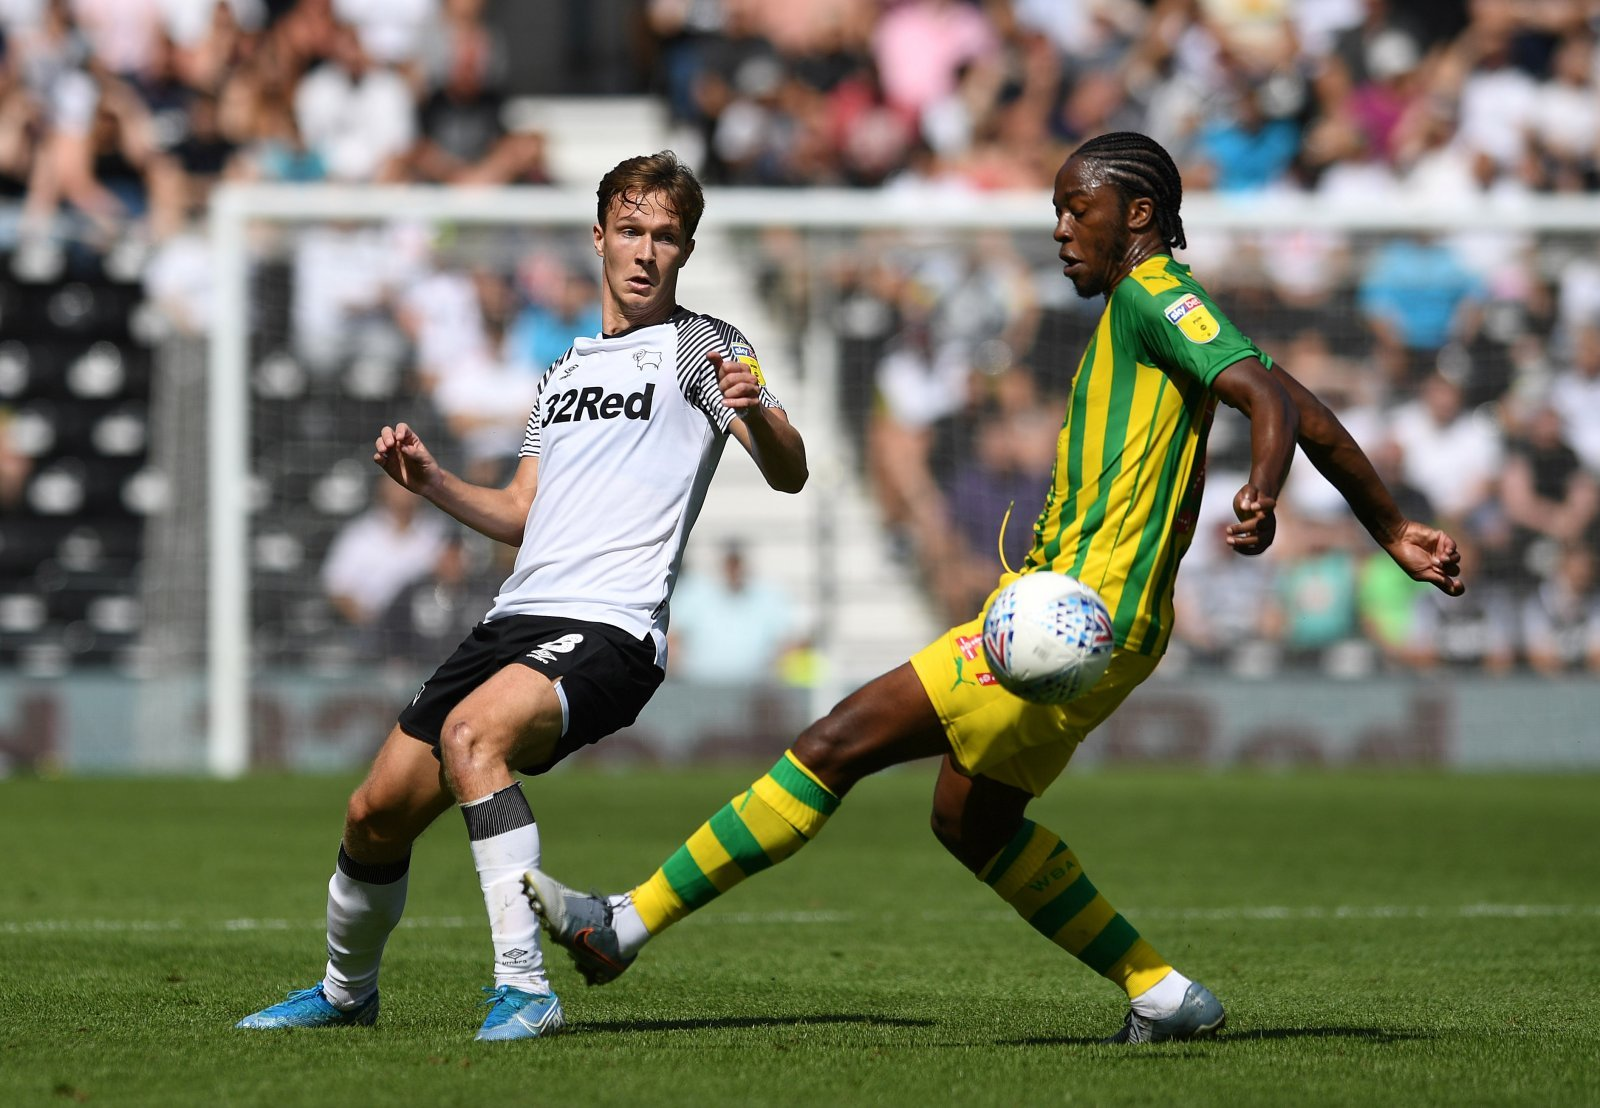 Derby County's Kieran Dowell in action with West Bromwich Albion's Romaine Sawyers